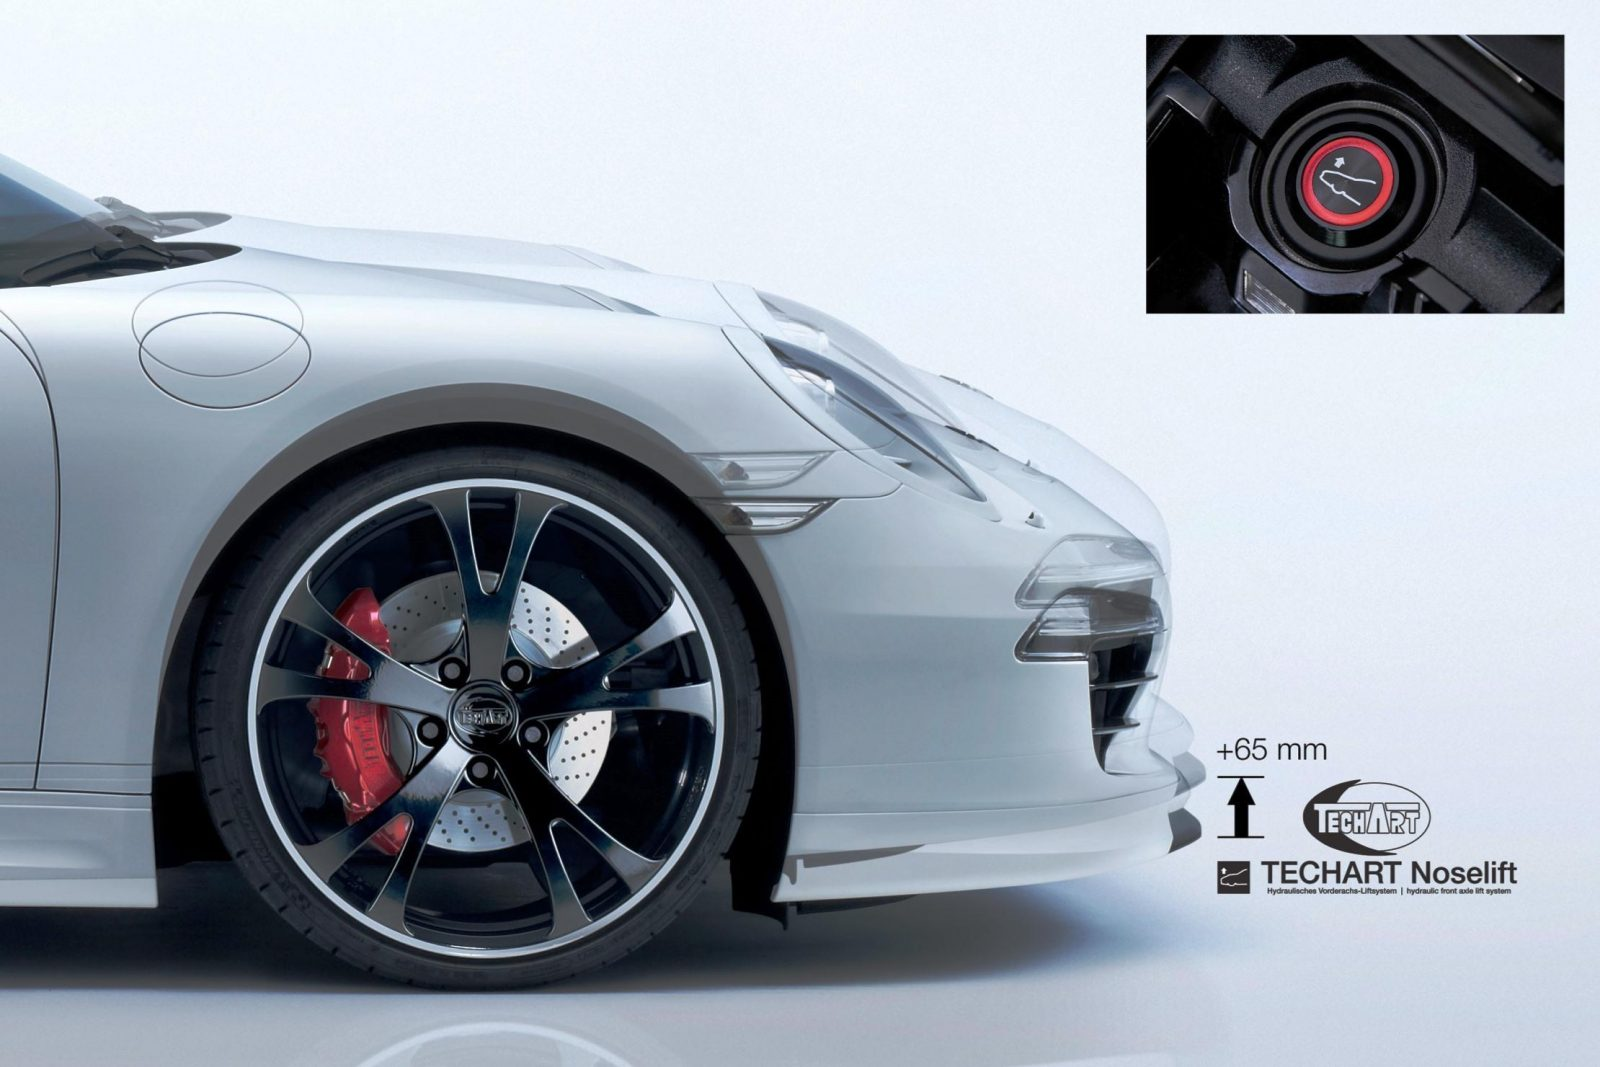 TECHART_Noselift_System_for_Porsche_911_models